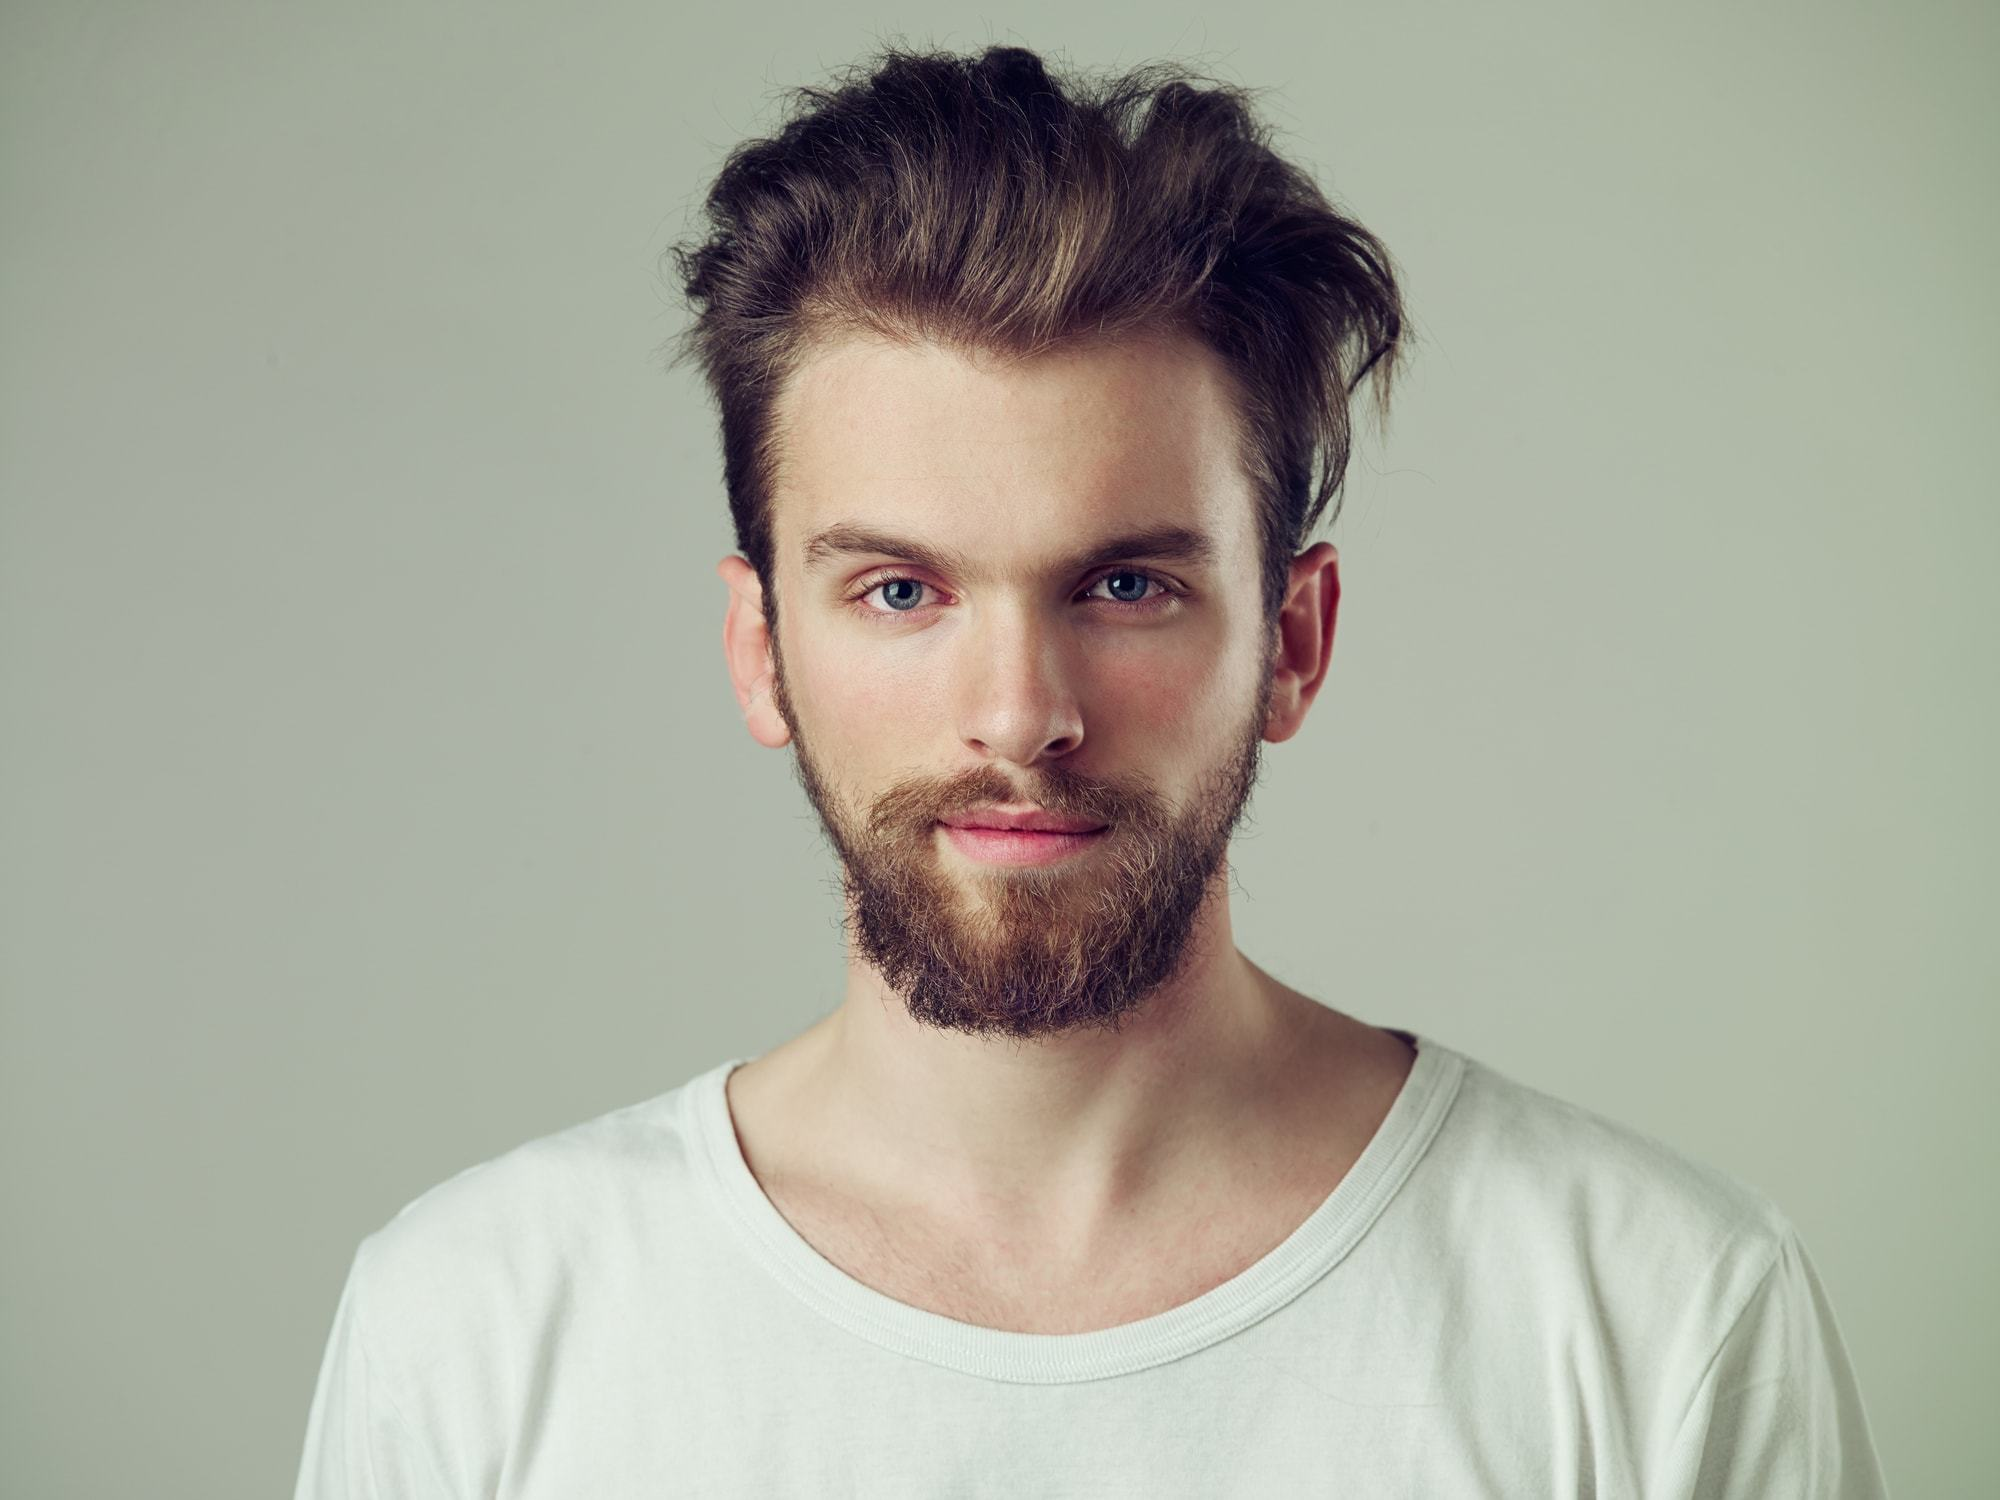 20 Messy Hairstyles Men Can Create in Five Minutes or Less